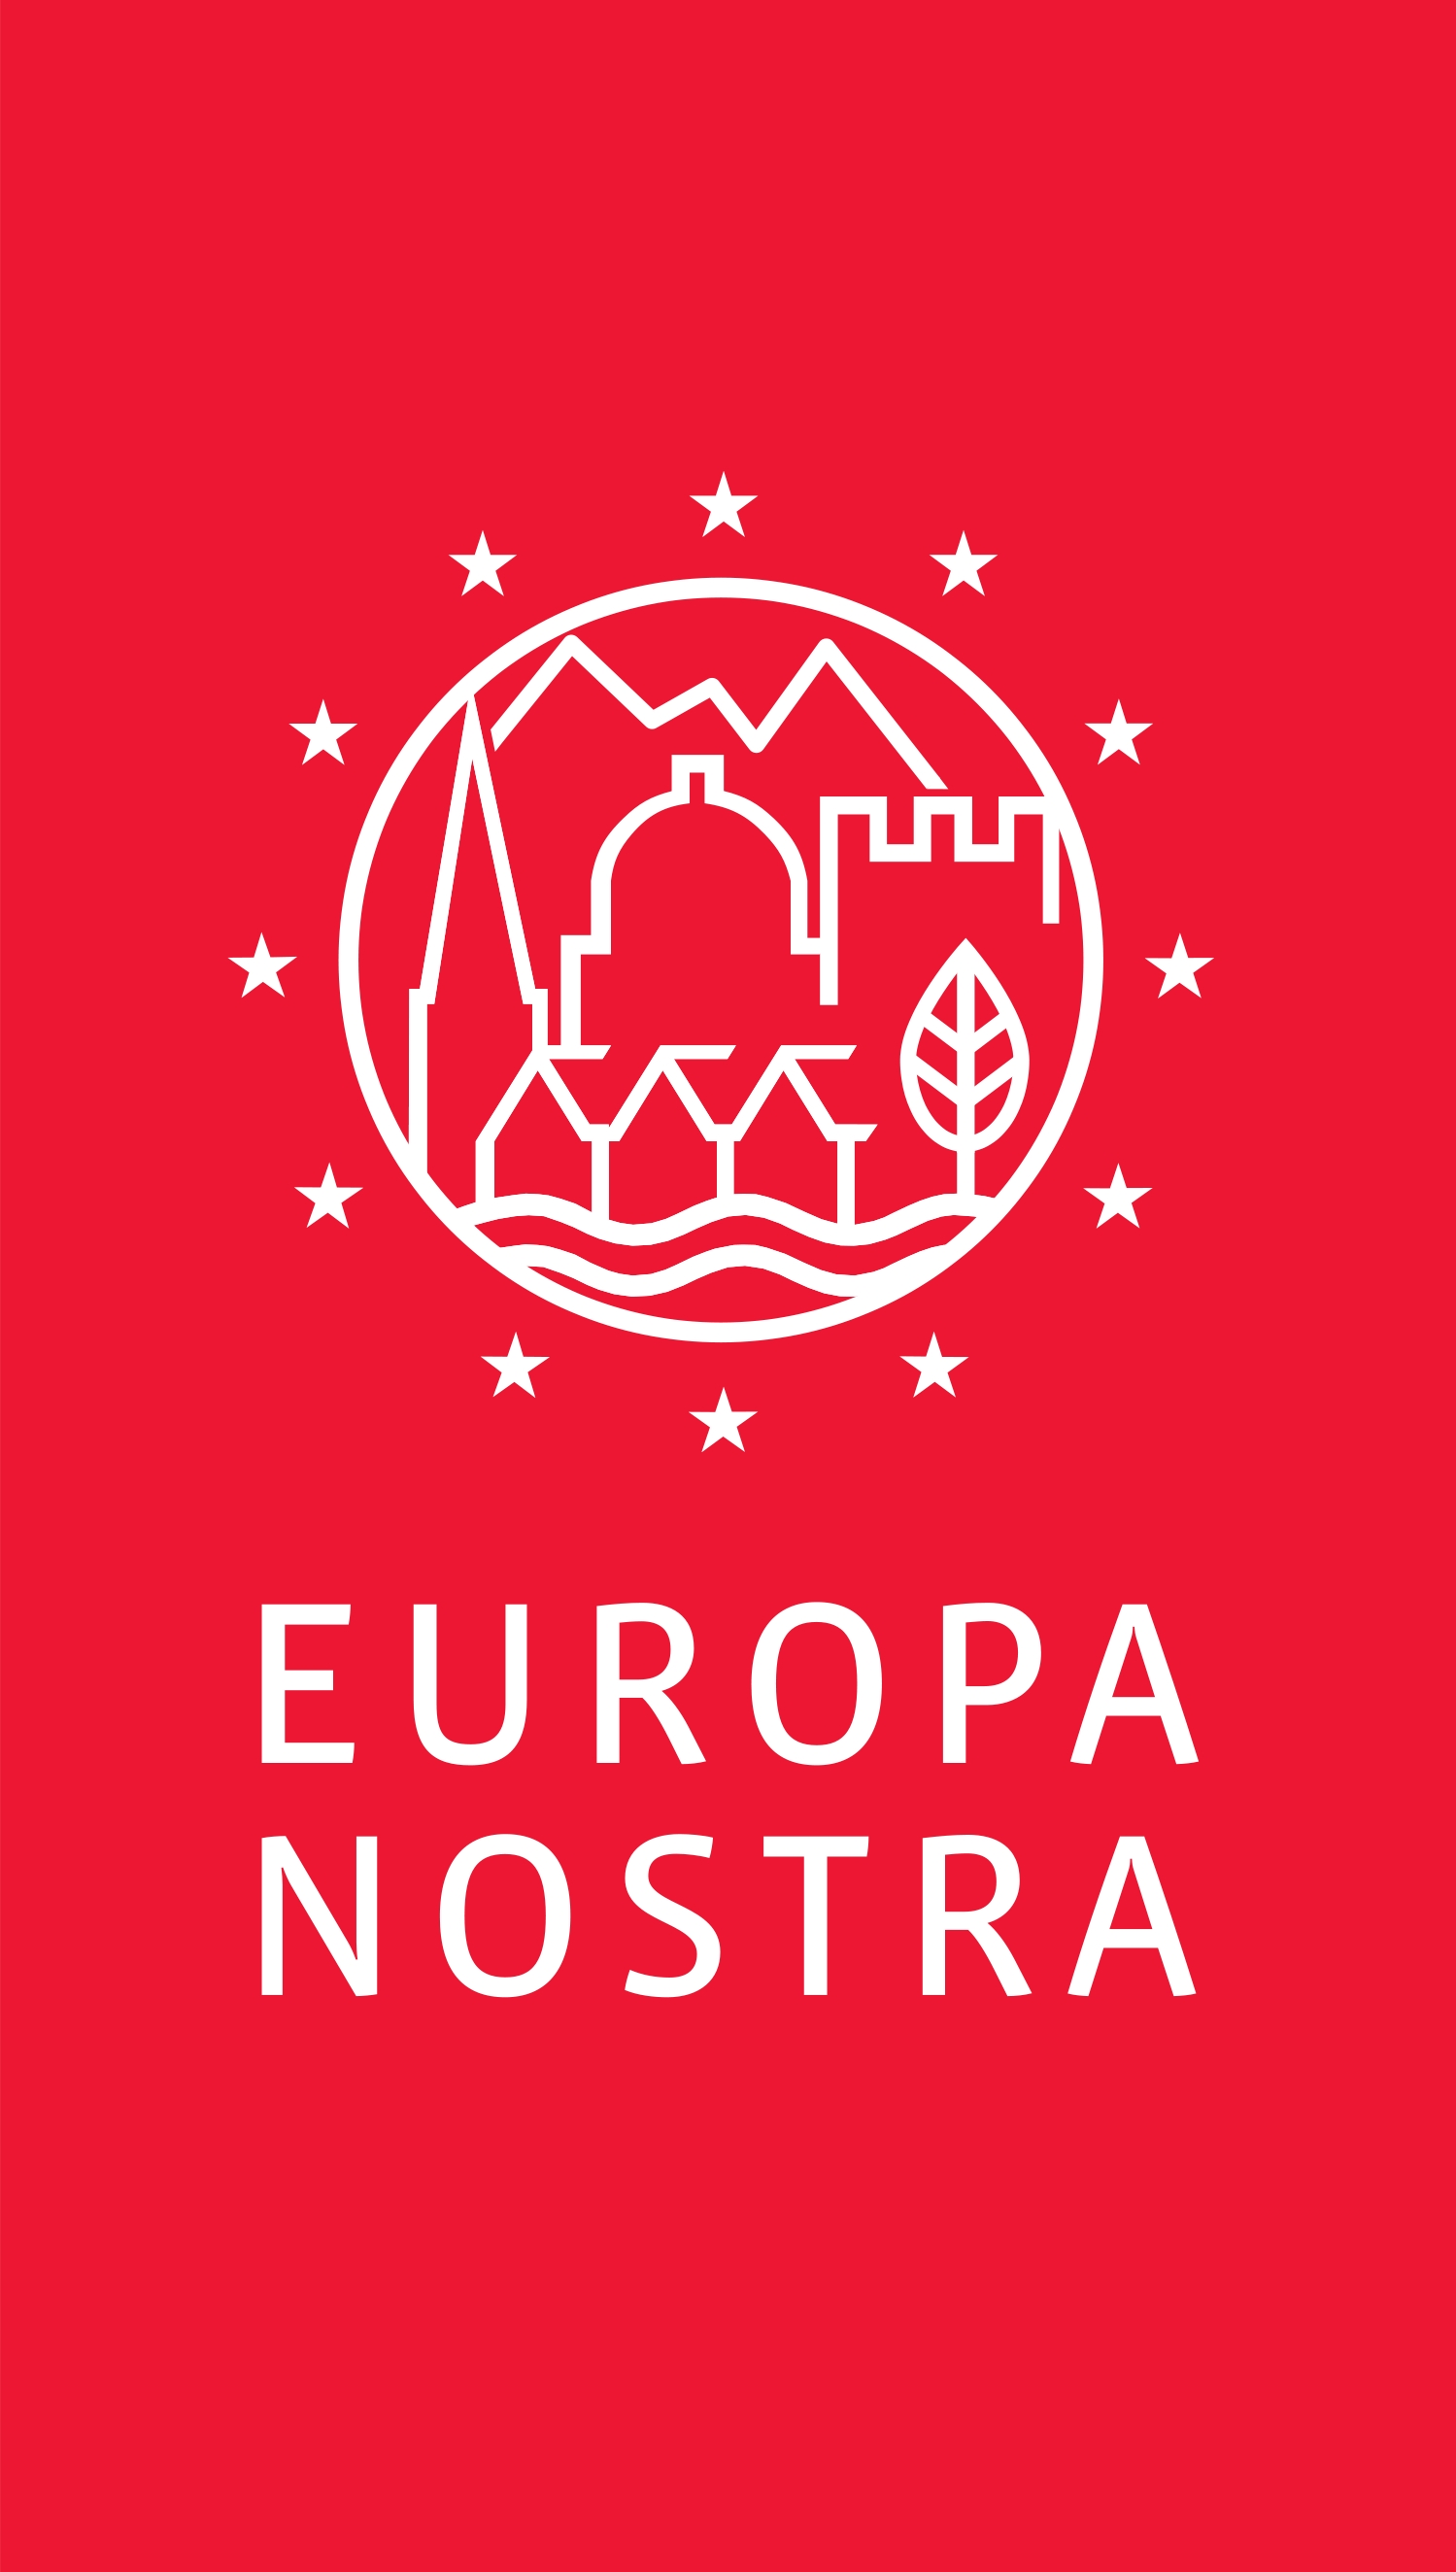 europa nostra logo red high